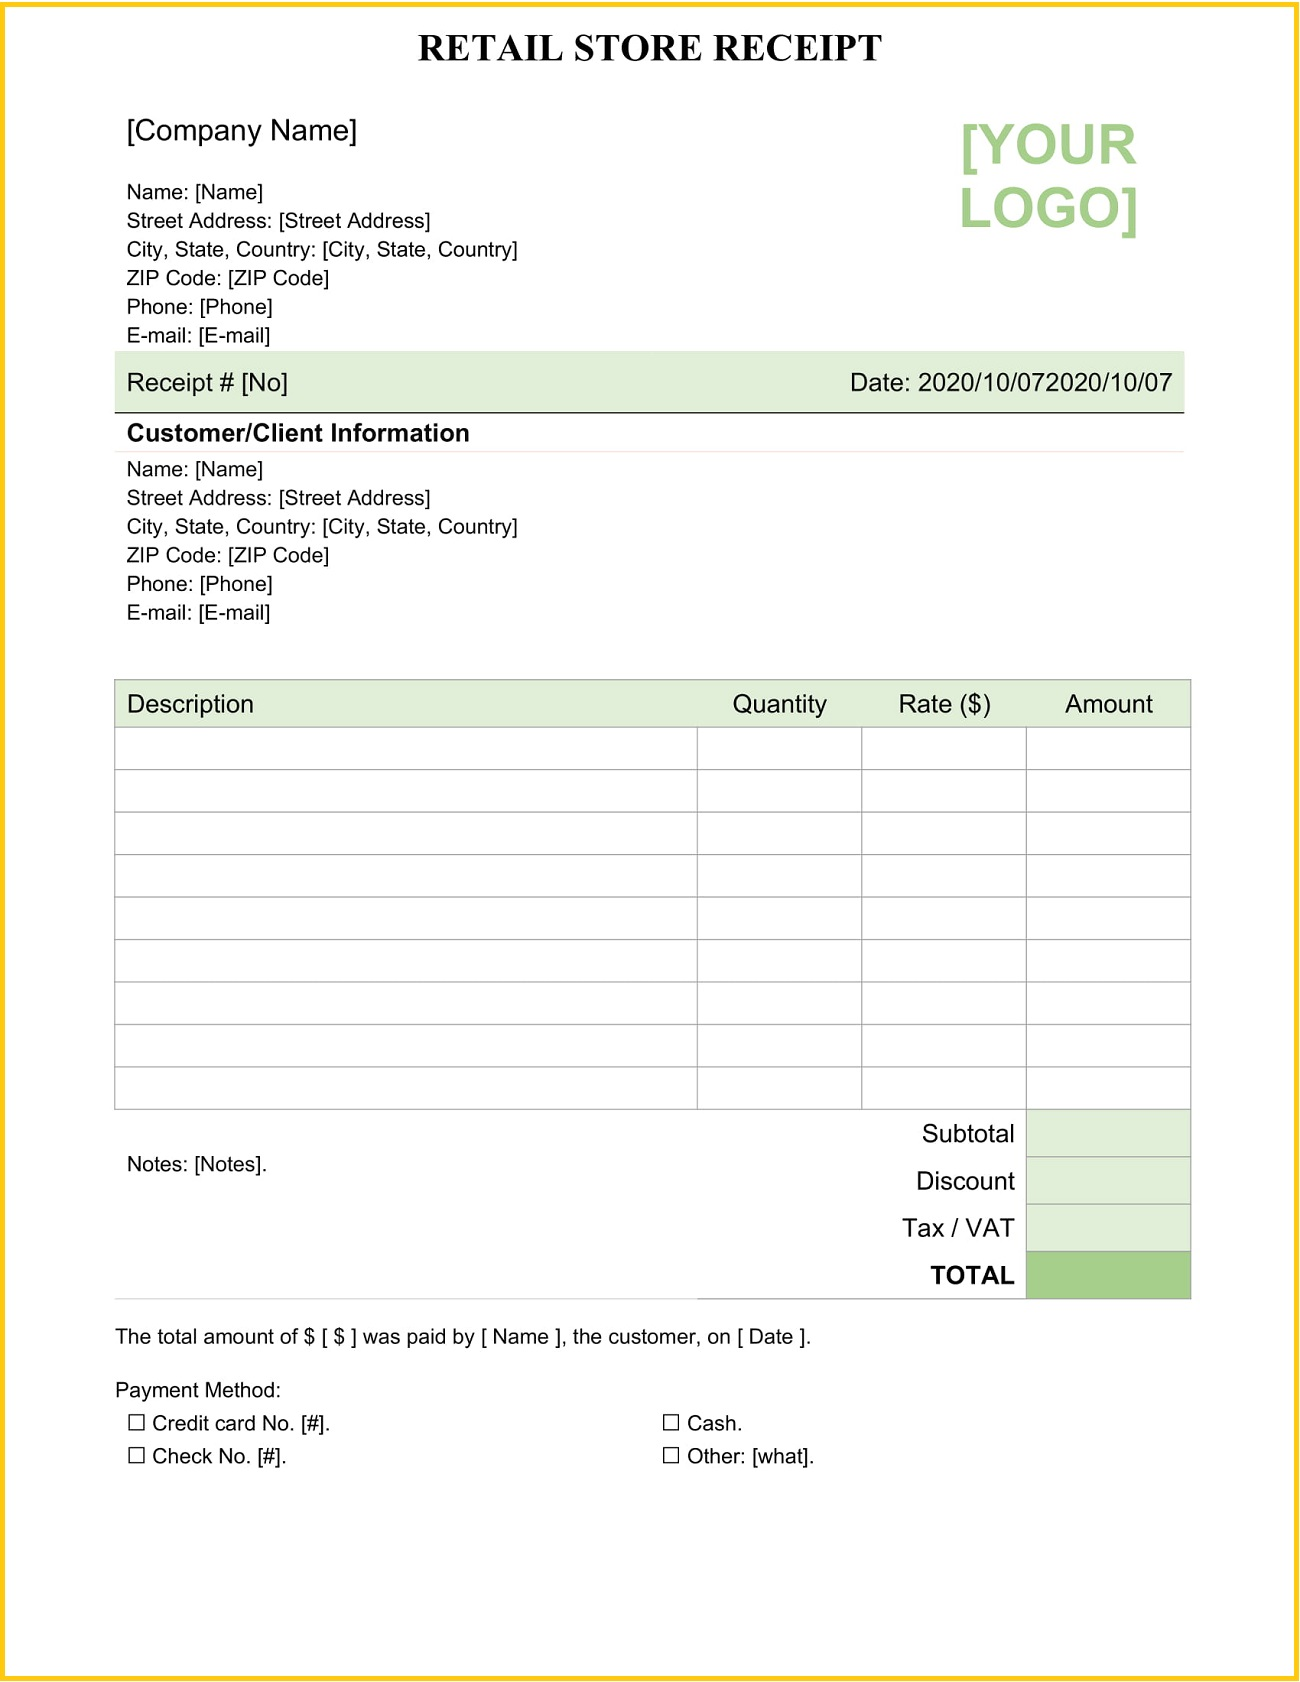 Retail Store Receipt Template Word